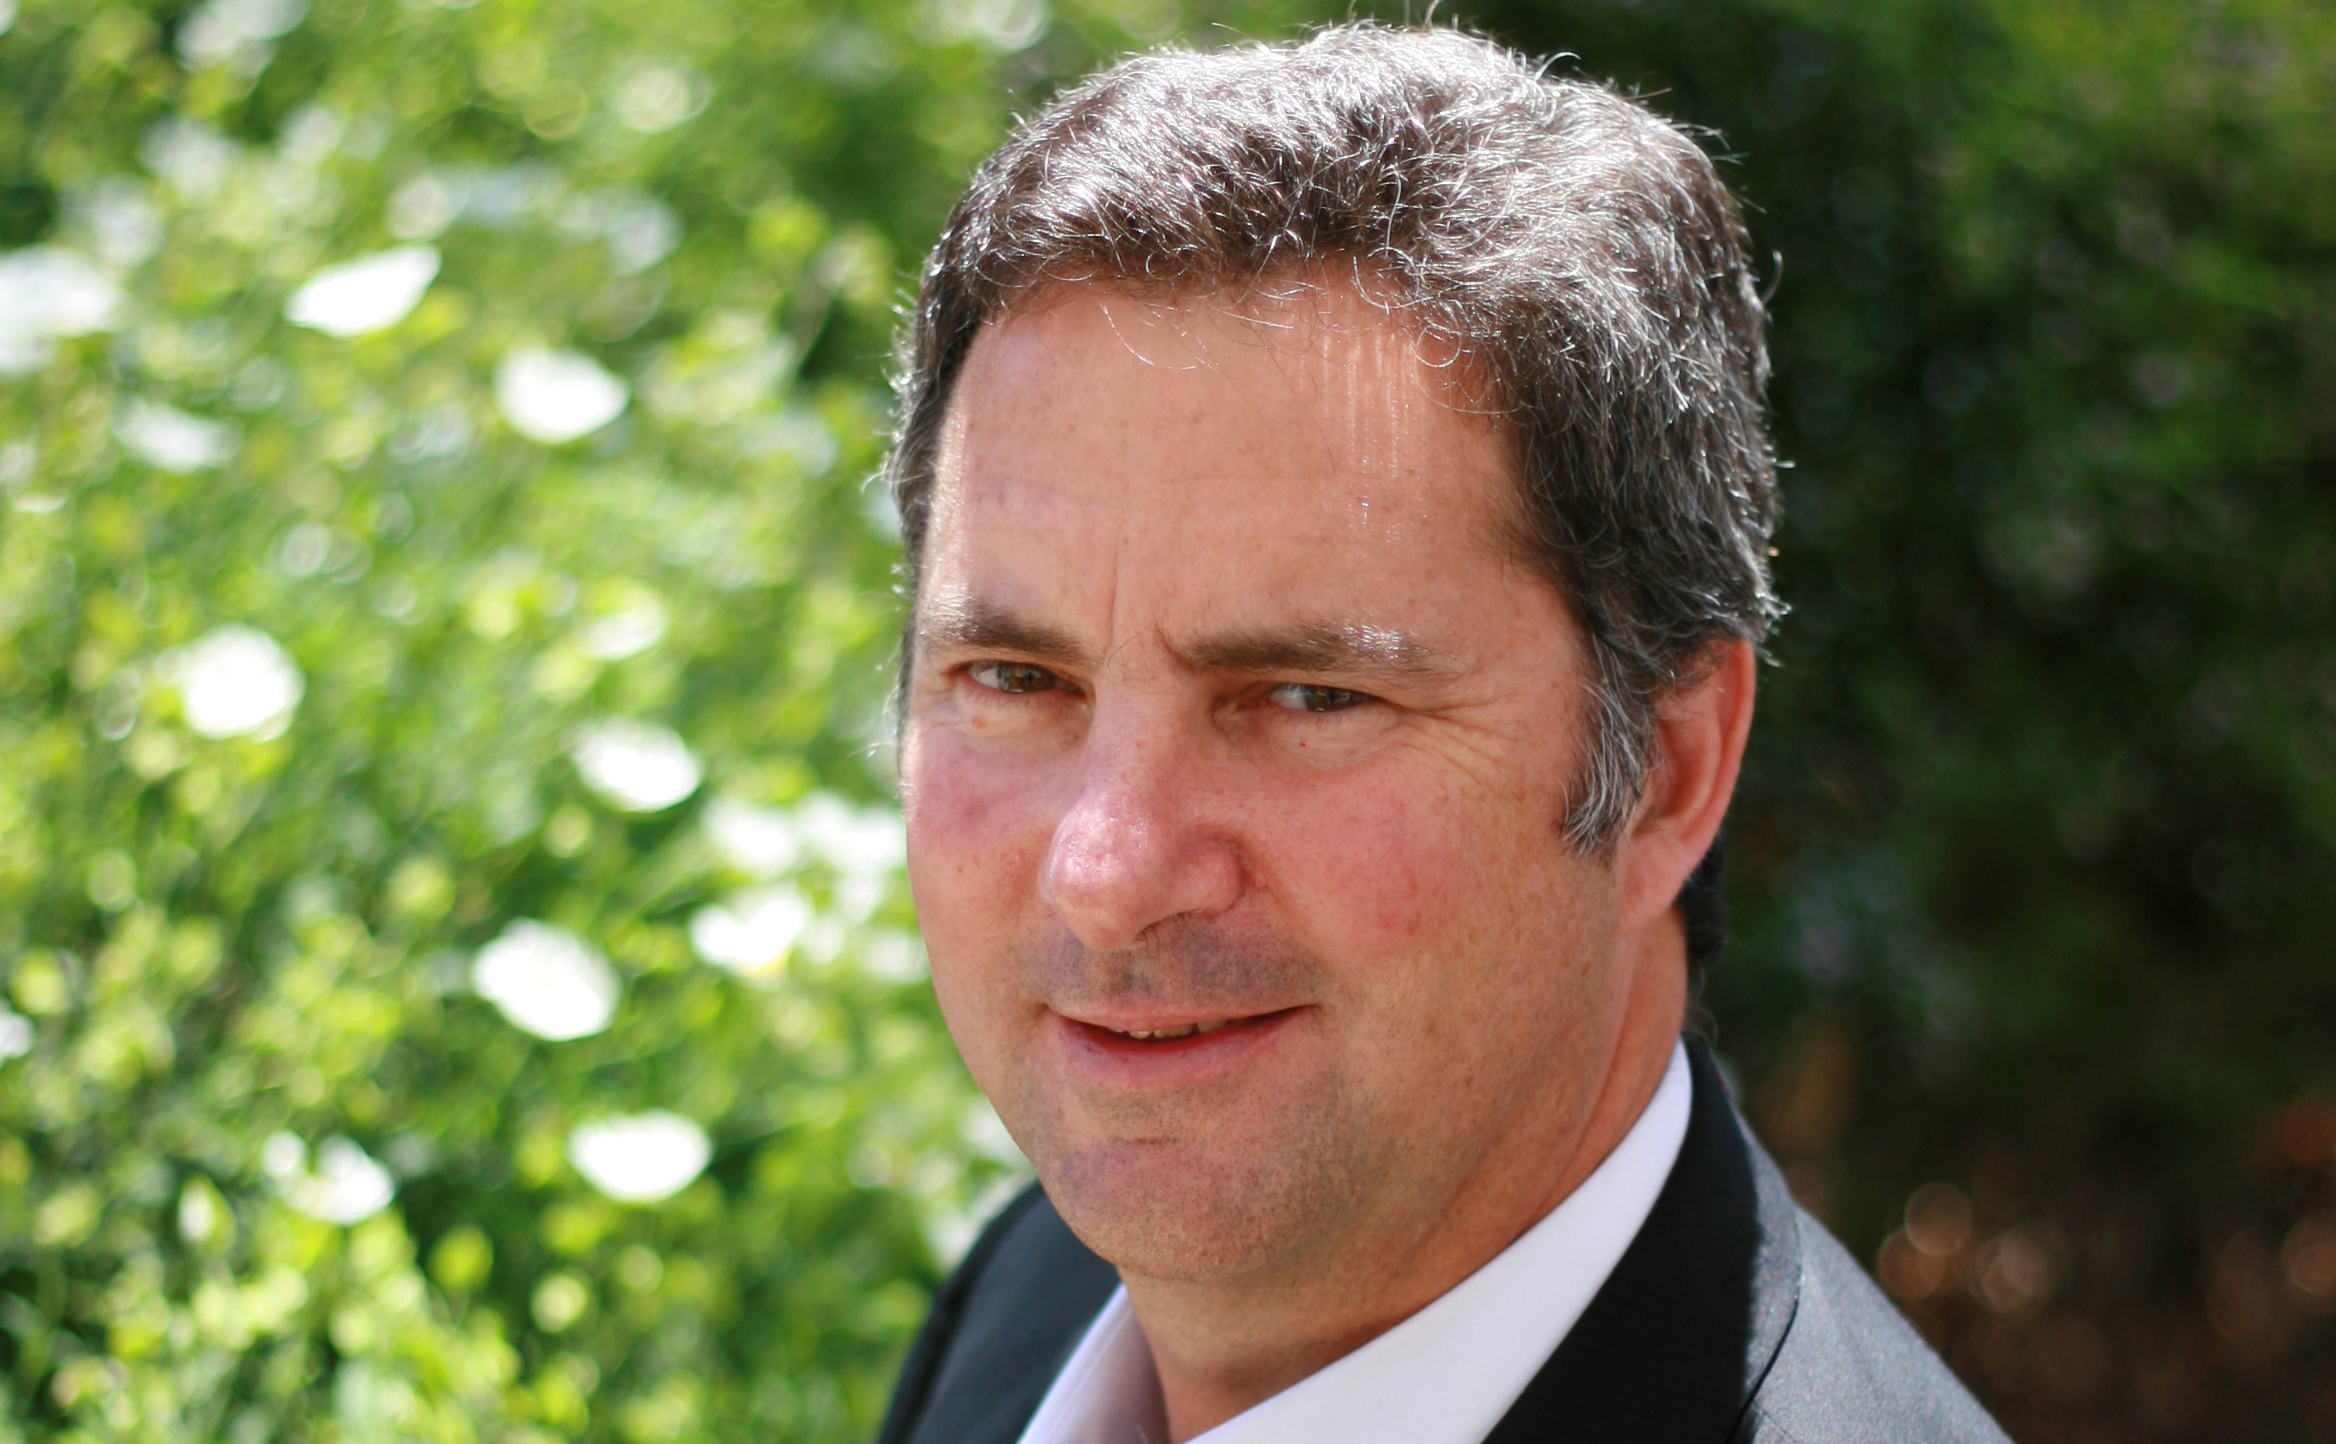 Dr Larry Marshall, CSIRO Chief Executive in a garden